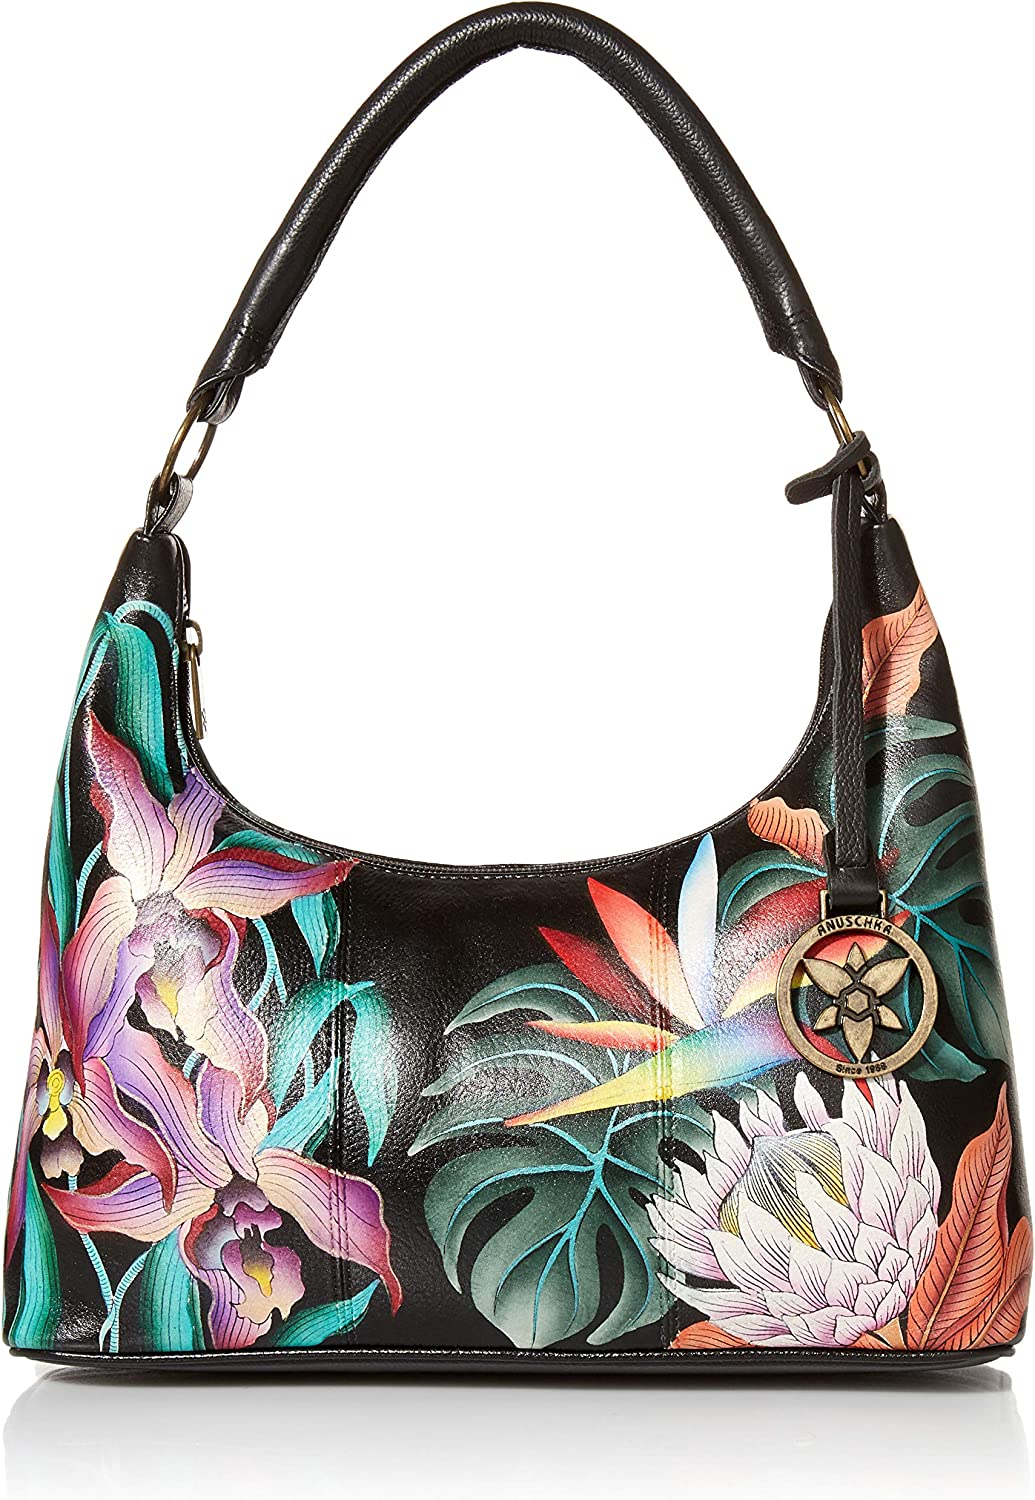 Anuschka Handbags Medium Top Zip Hobo On Escape 371 Outlet ☆ Free Shipping Black Island low-pricing